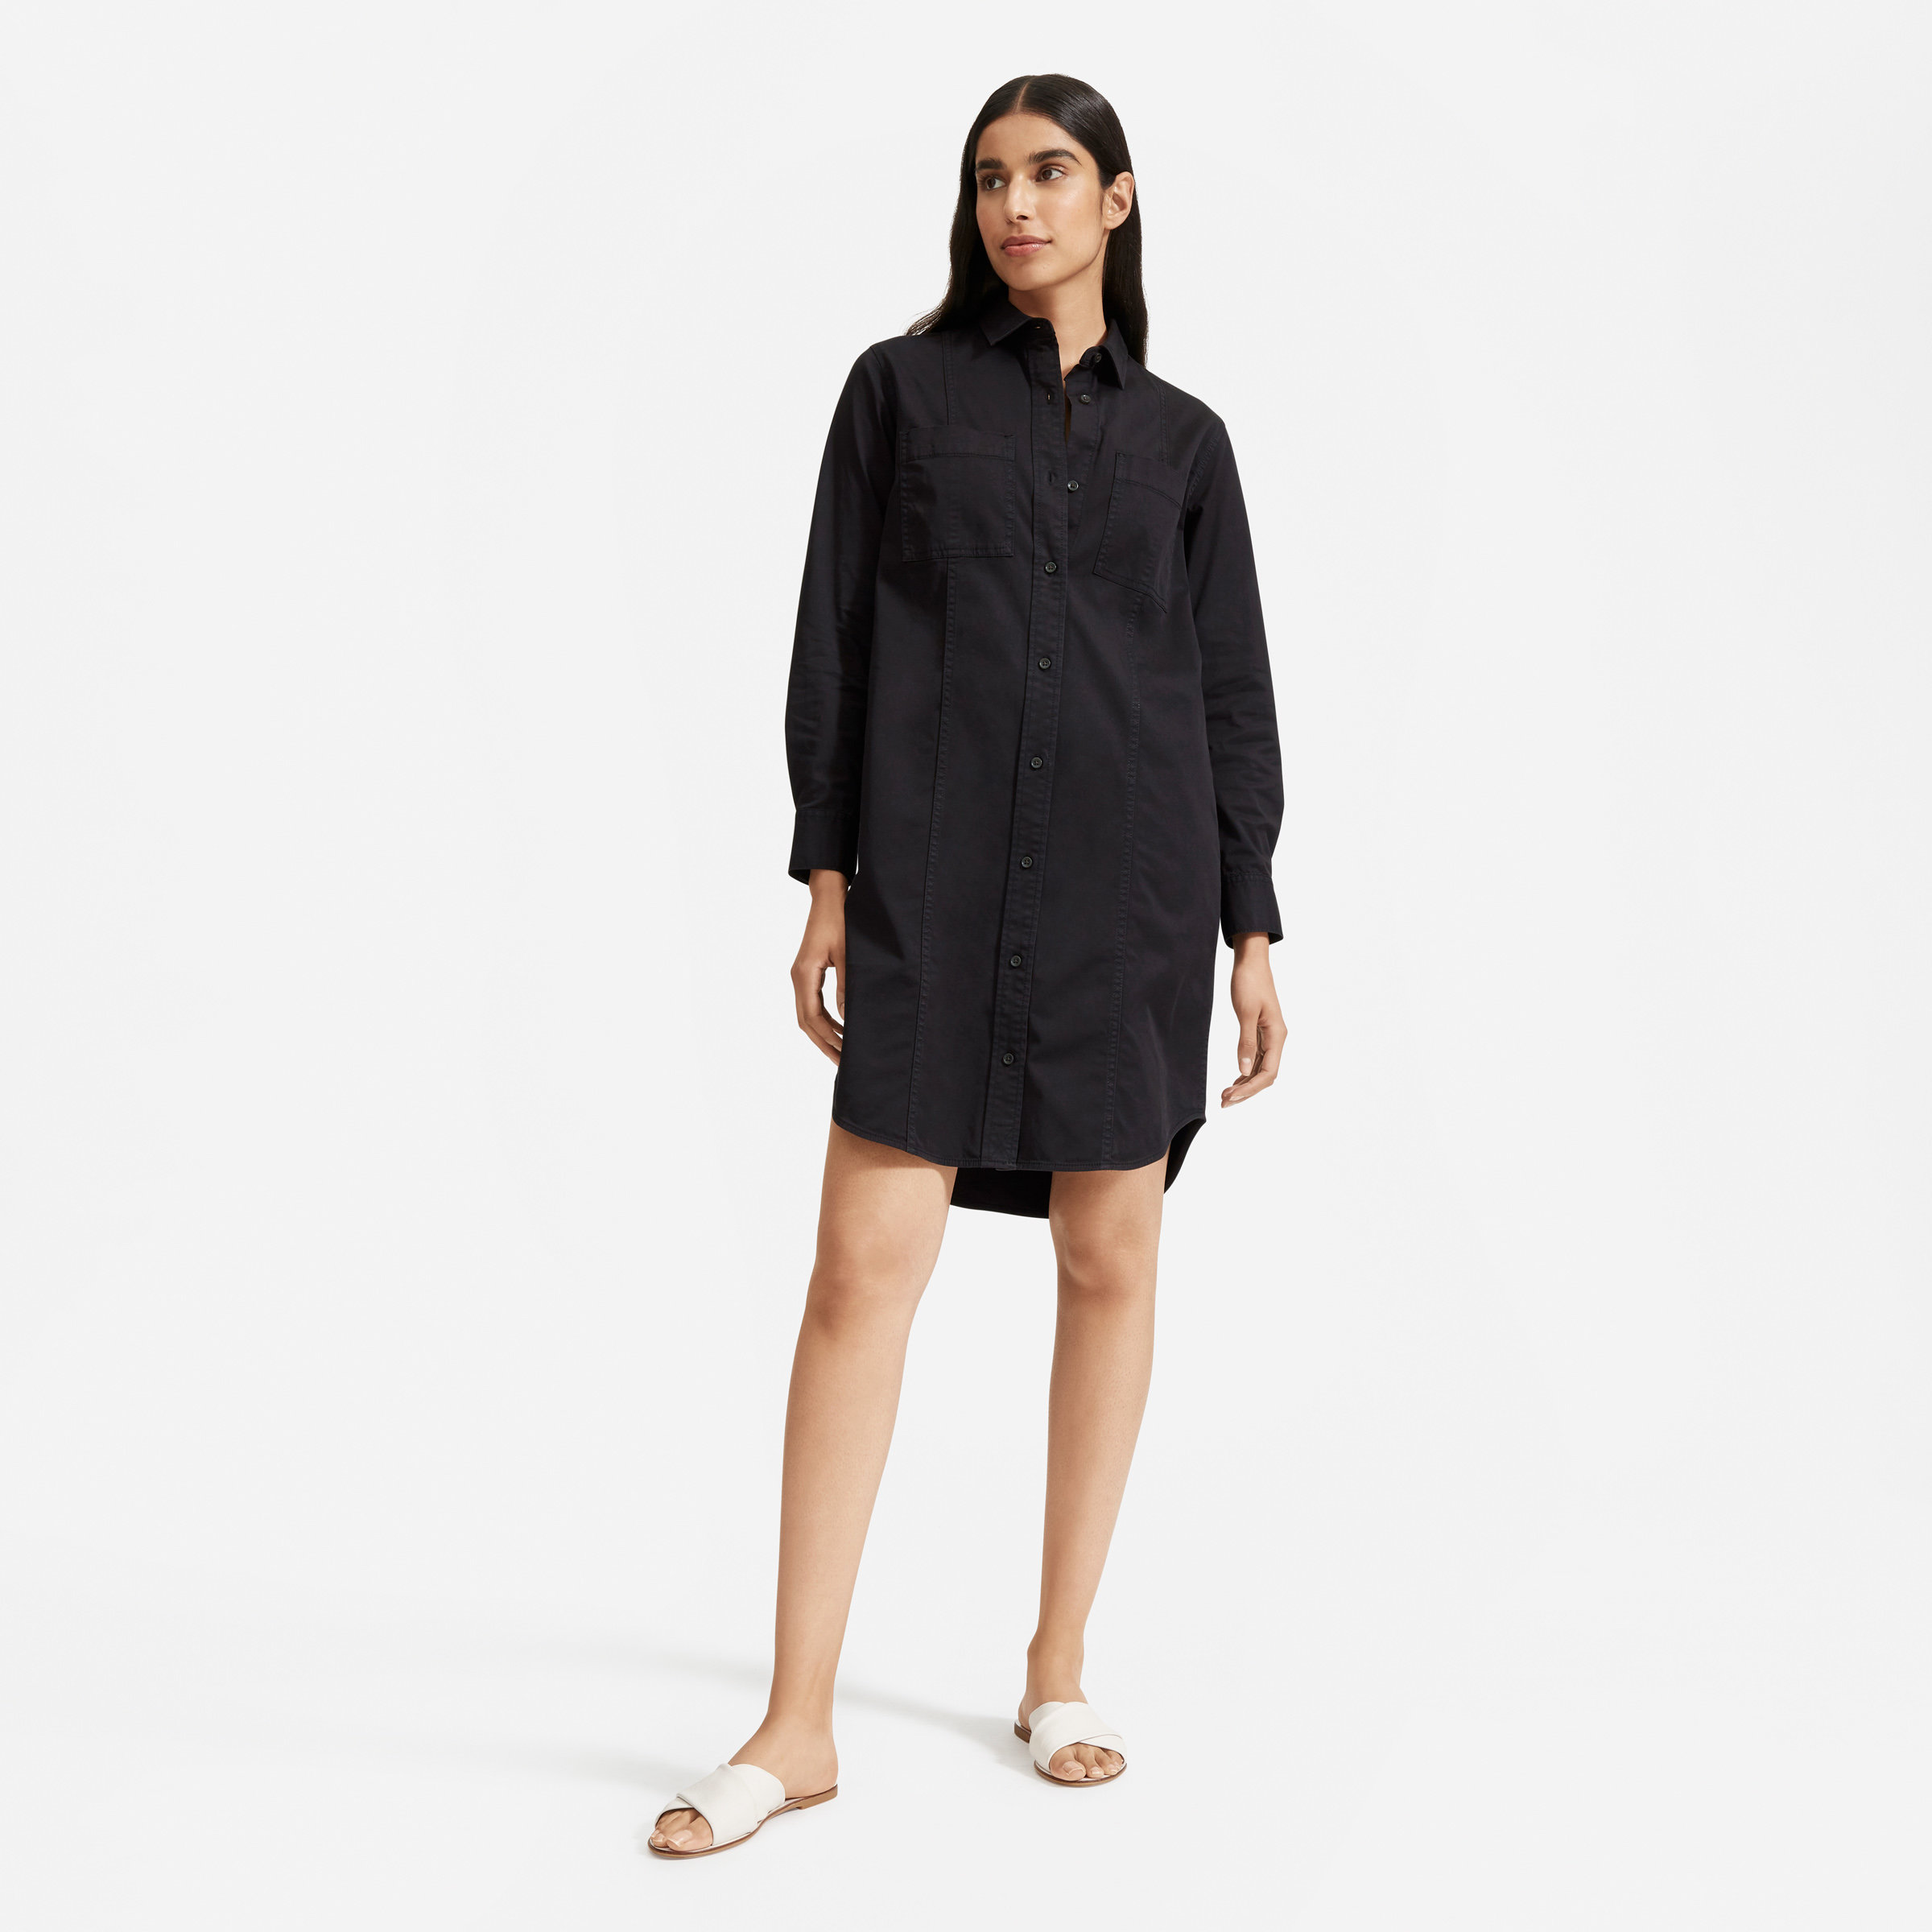 Everlane The Modern Utility Shirtdress, a find